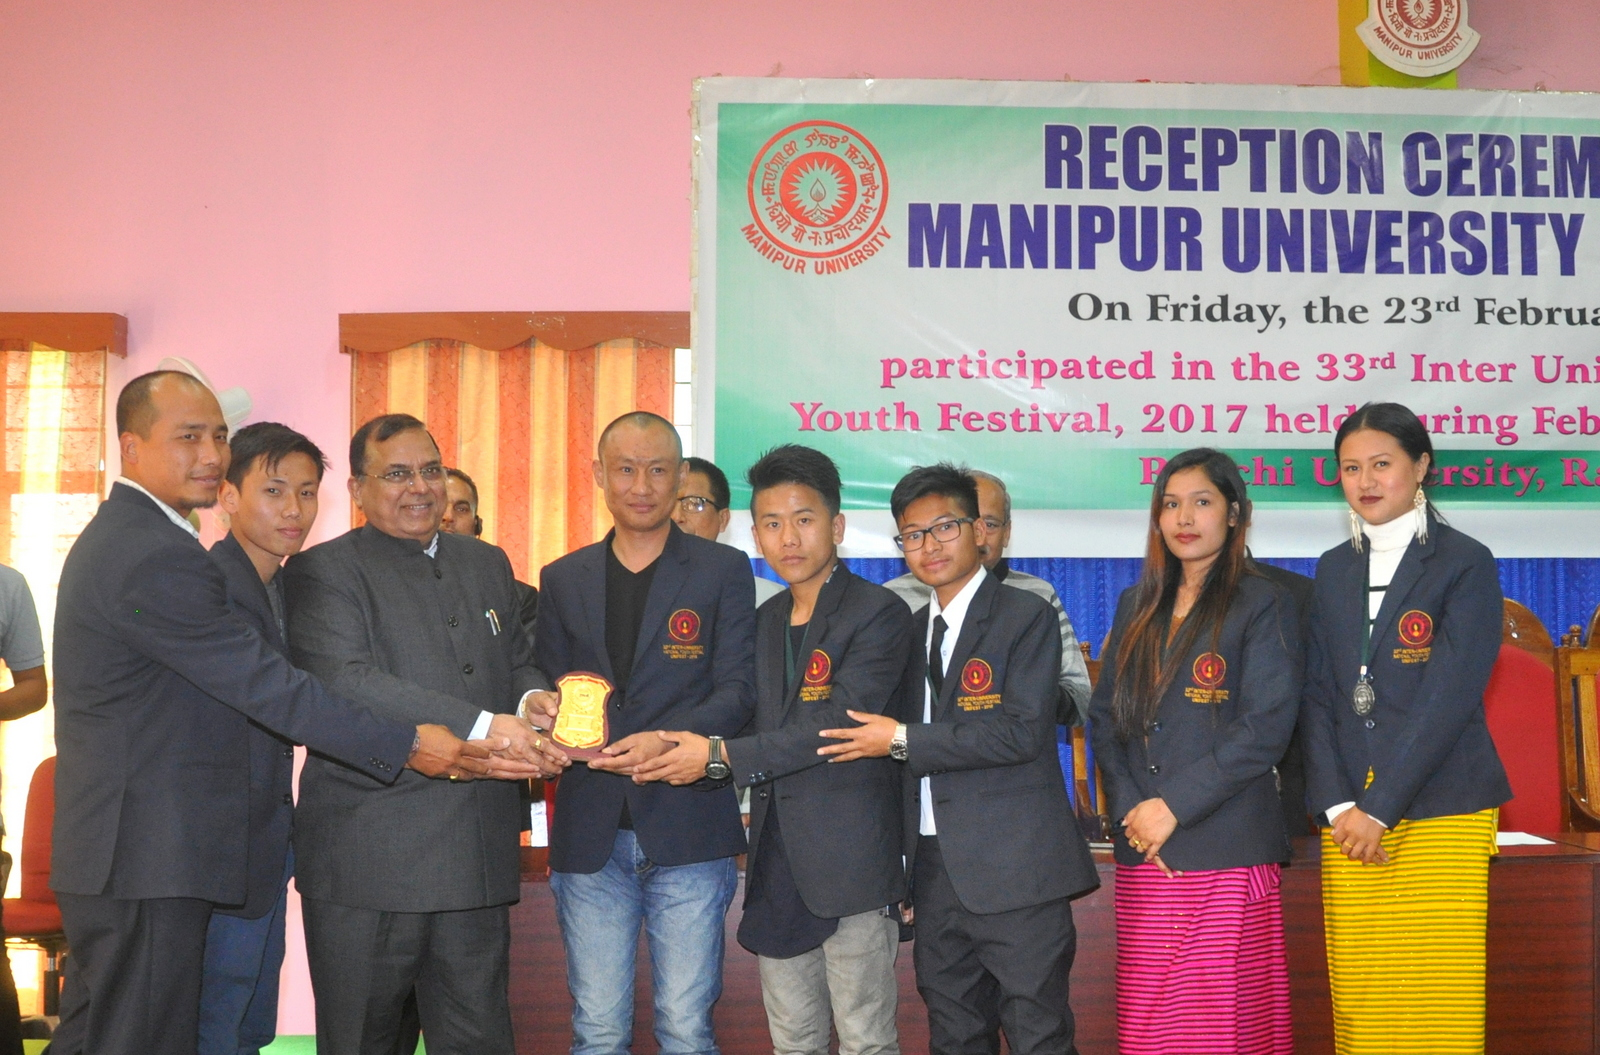 Reception Ceremony of the Manipur University Cultural Team